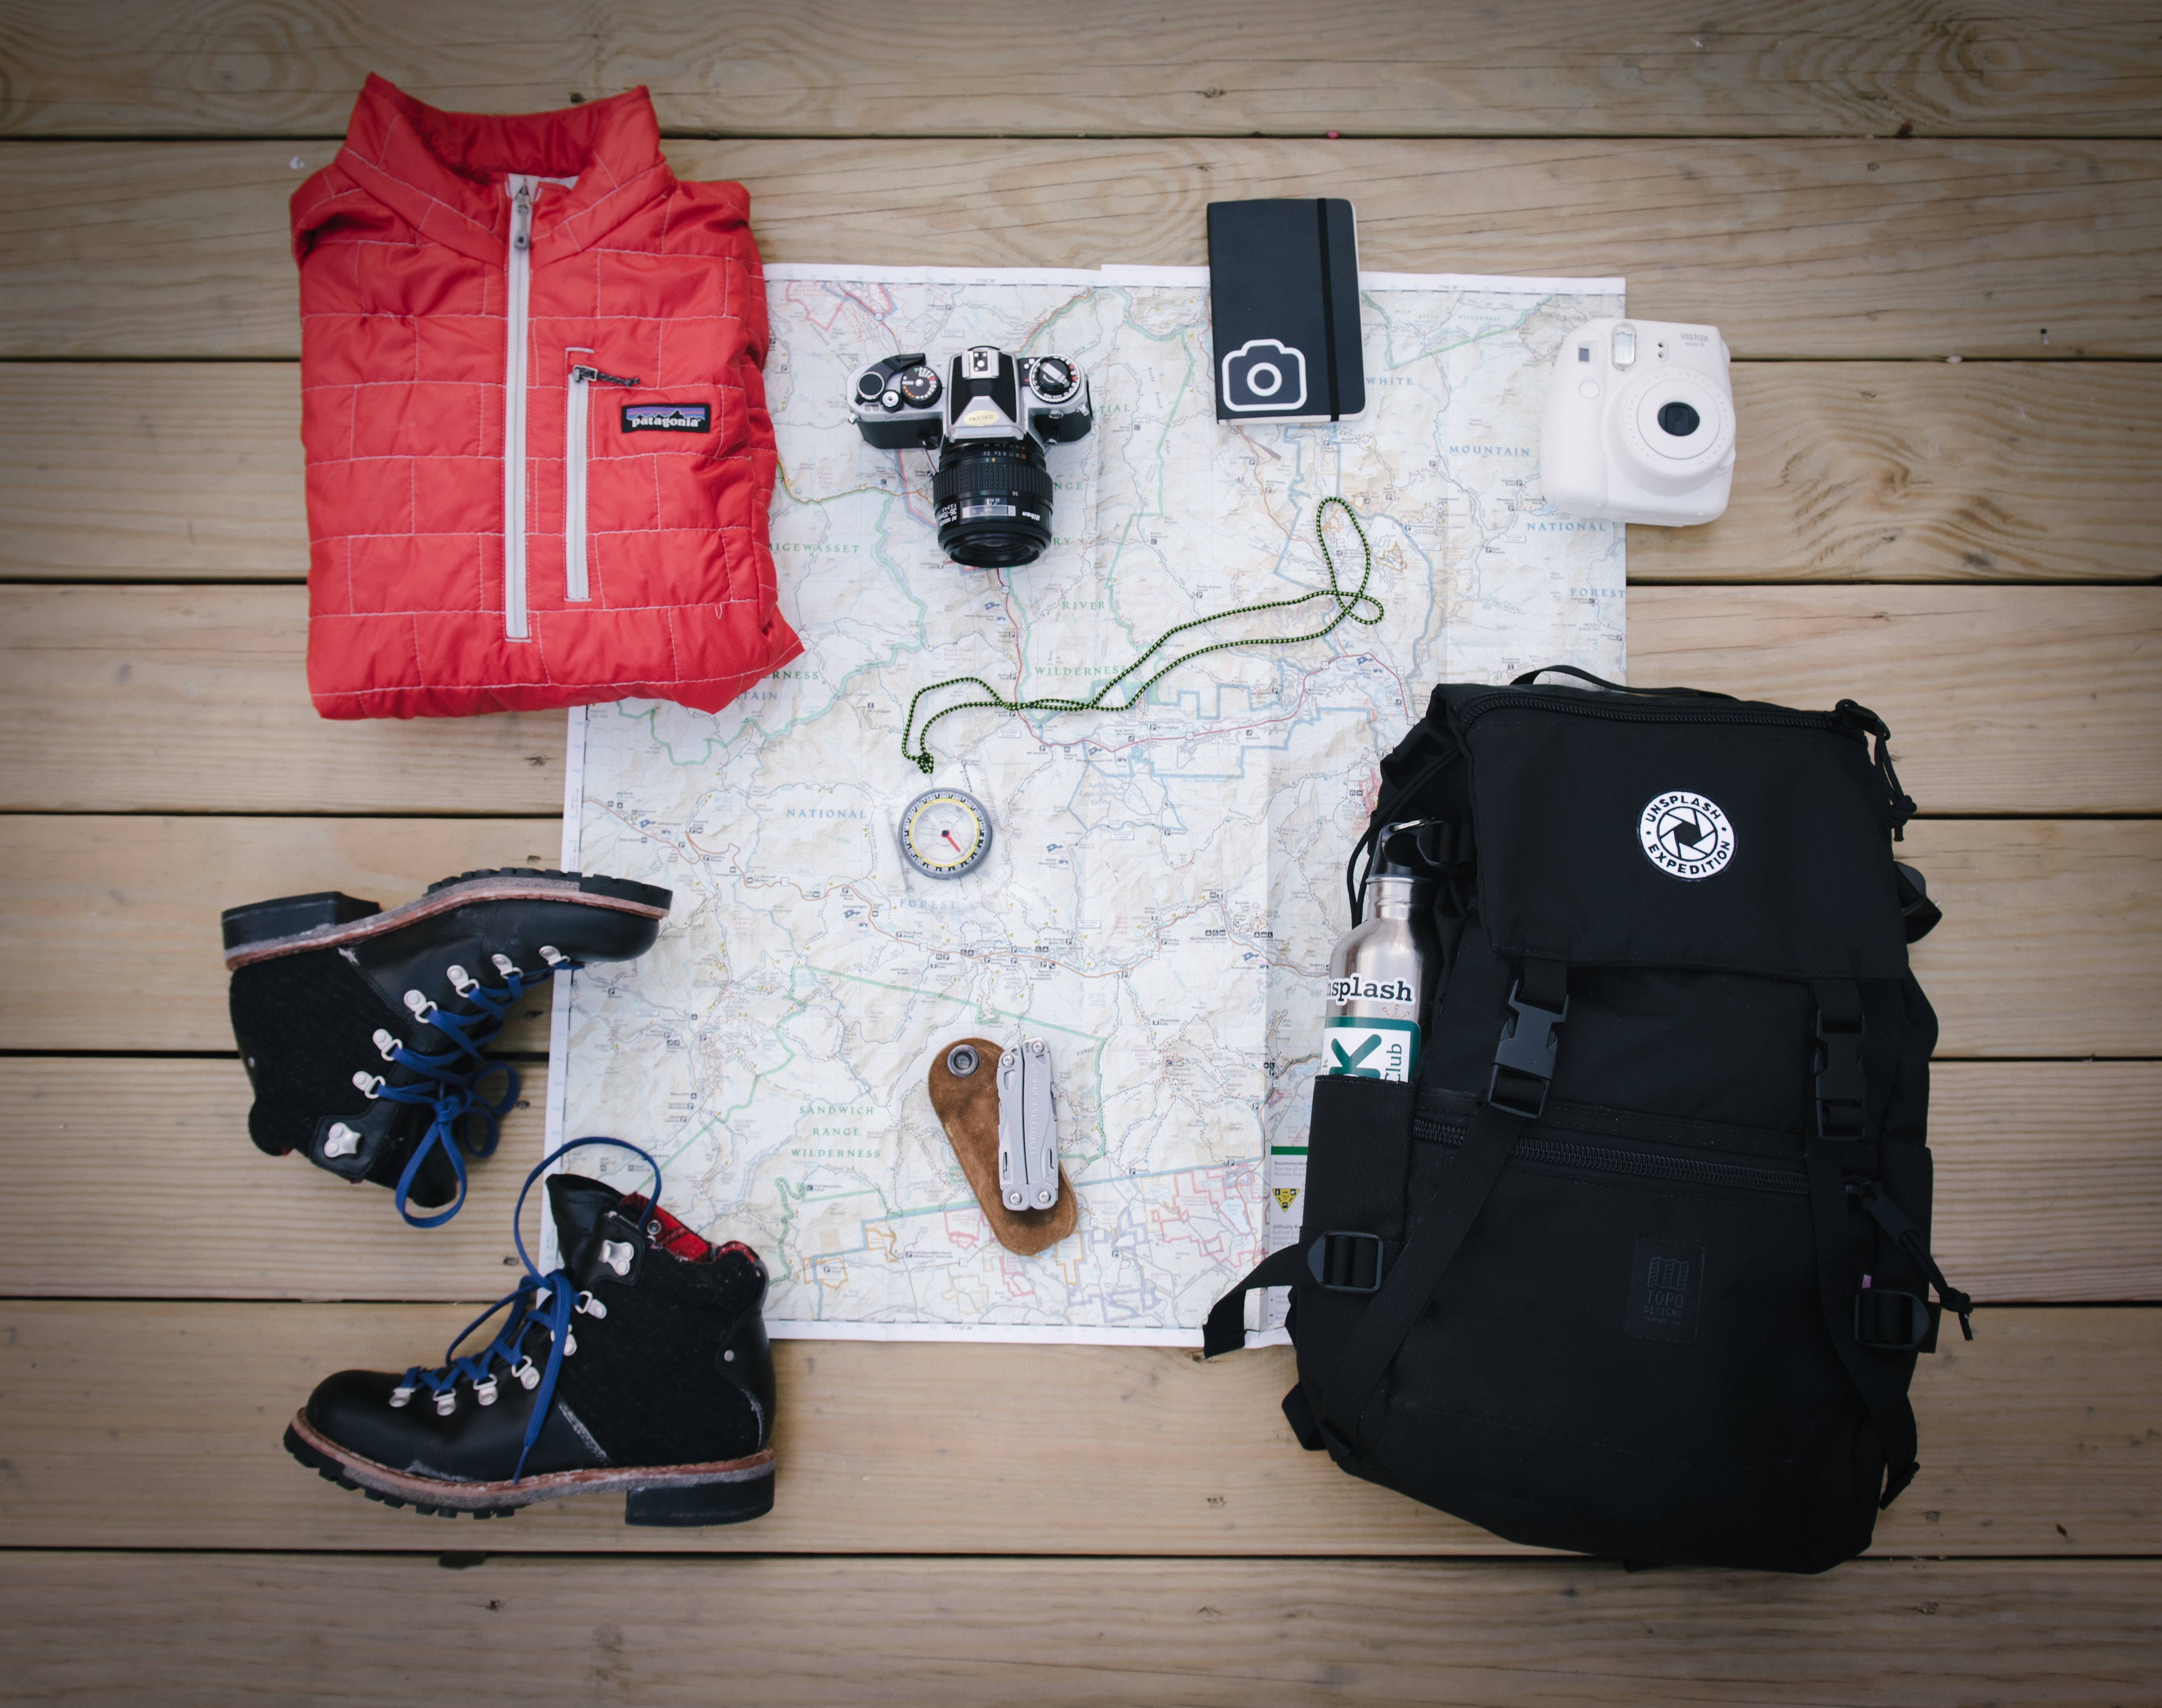 Expedition gear including a backpack, boots, jacket, camera, compass, and map